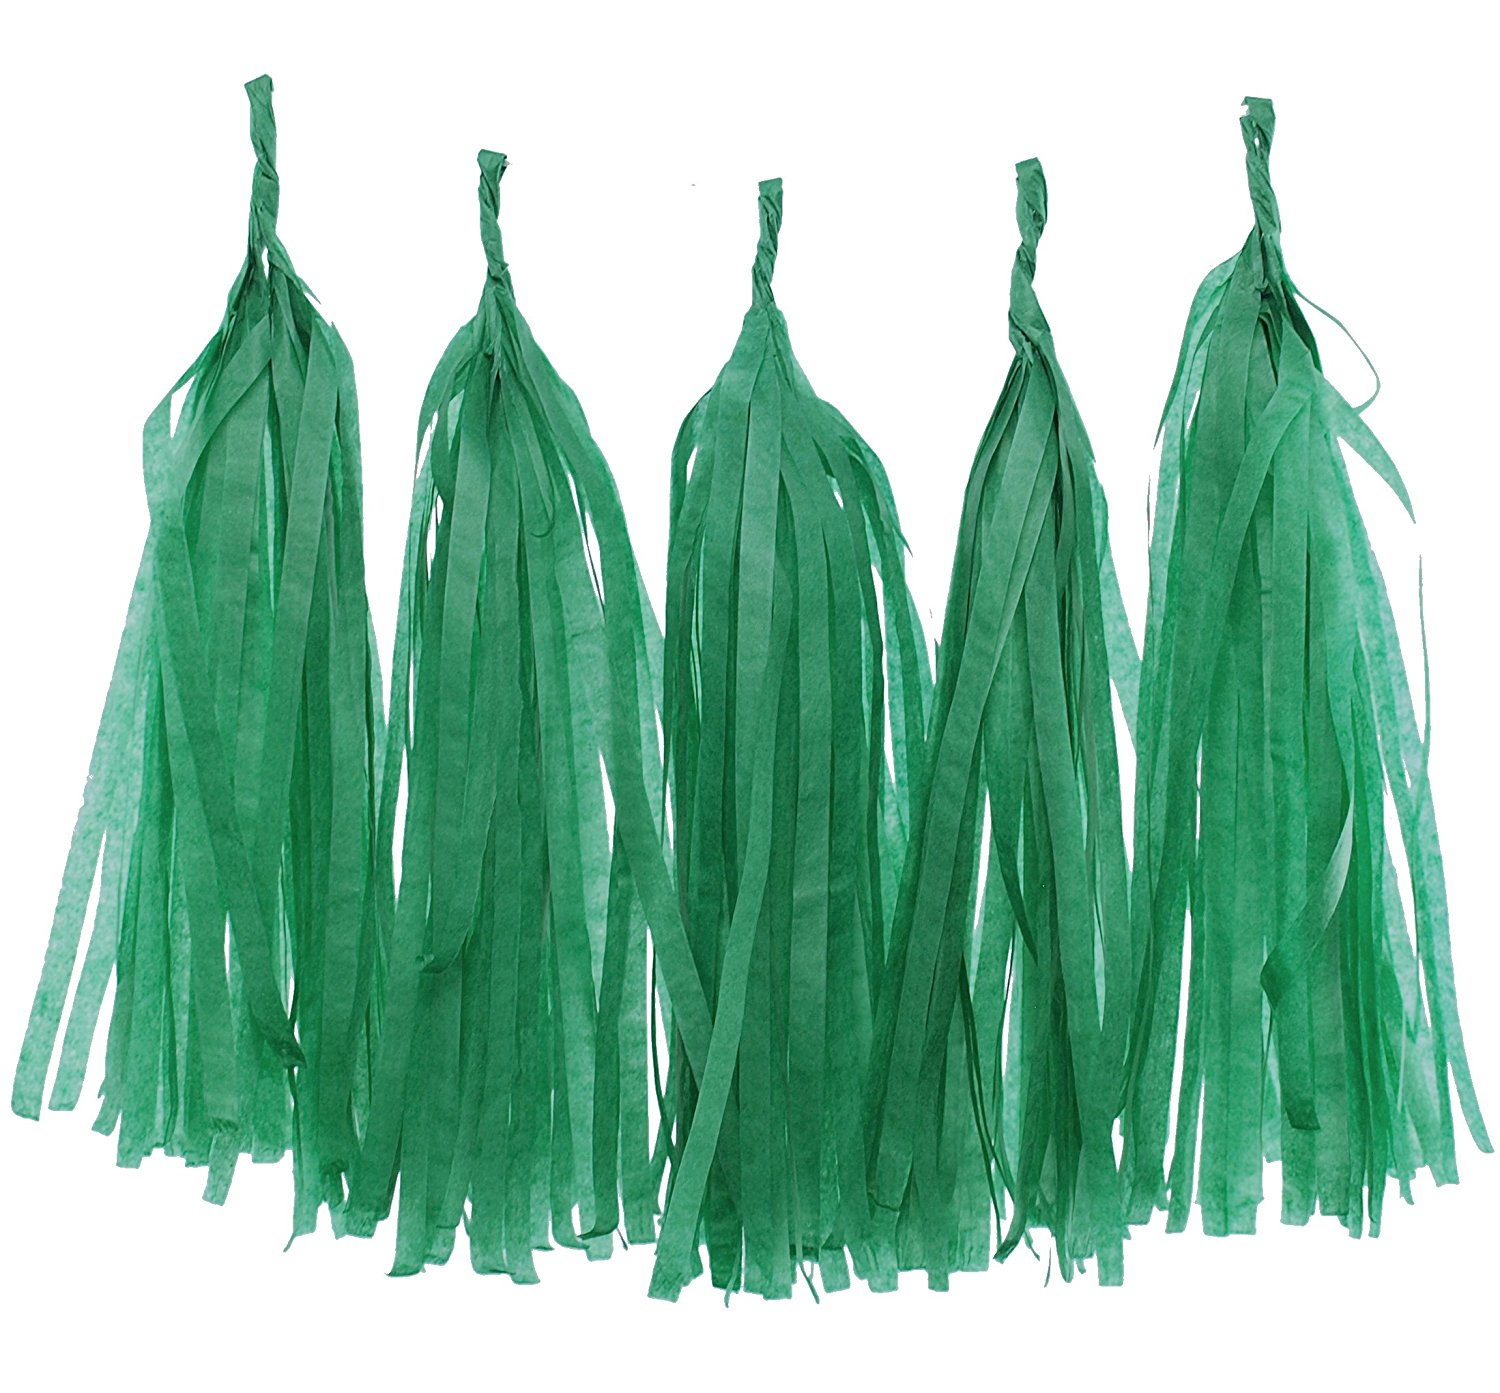 Green Garland, Tissue Paper Party Tassels (Set of 5) - Green Streamers, Tassel Banner, Kids Birthday Party Supplies, Party Backdrops